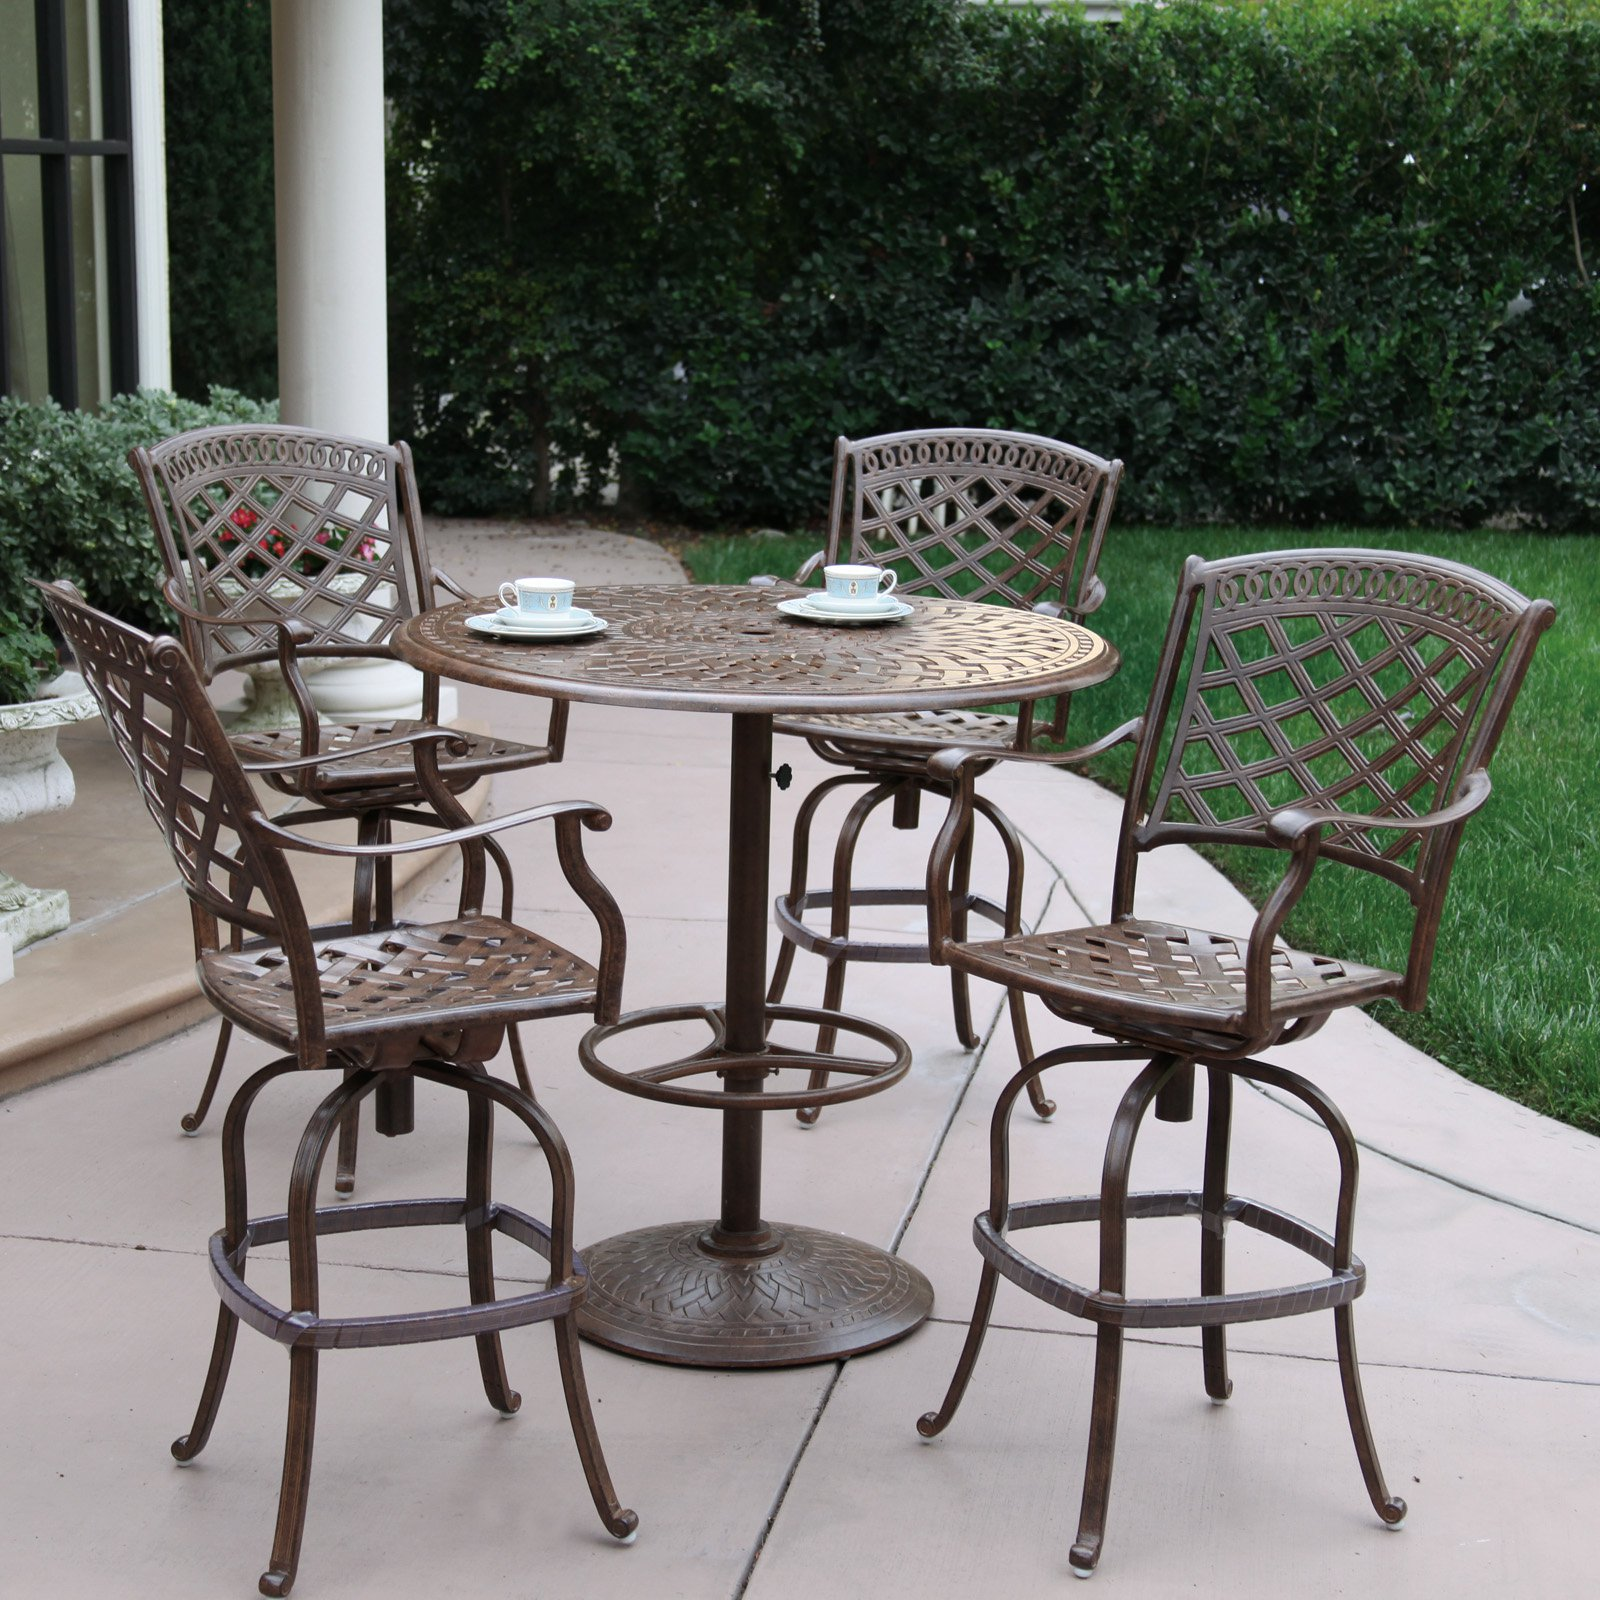 Outdoor Darlee Sedona 5 Piece Aluminum Counter Height Round Pedestal Patio Dining Set